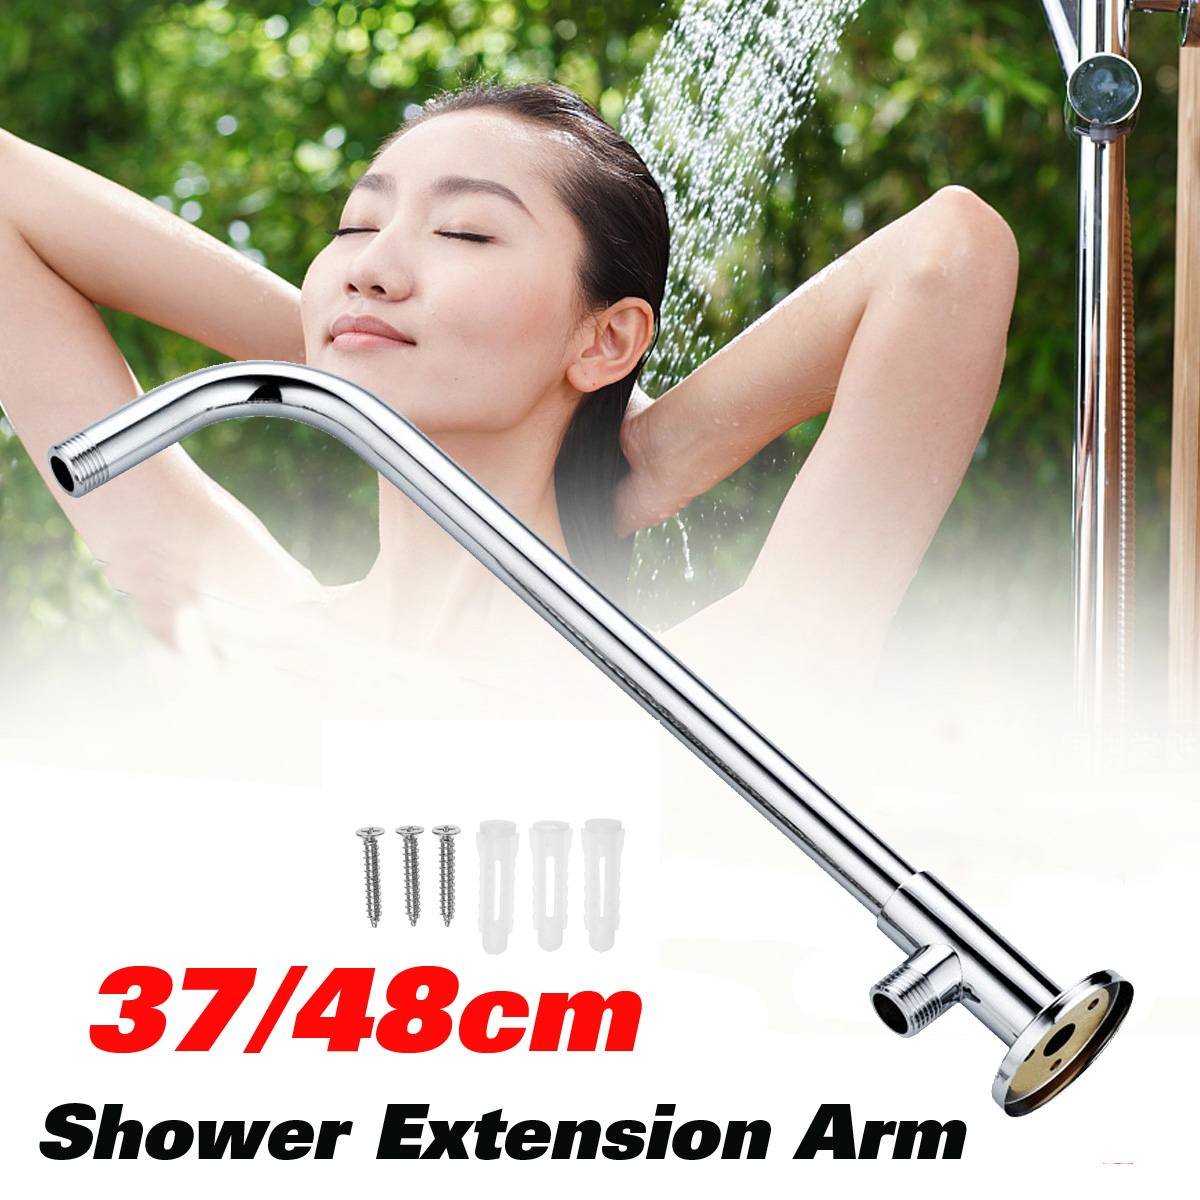 370mm/480mm Wall Mounted Shower Head Extension Arm Bottom Entry Hose Shower Extension Arm Fitting Mount Base For Home Bathroom